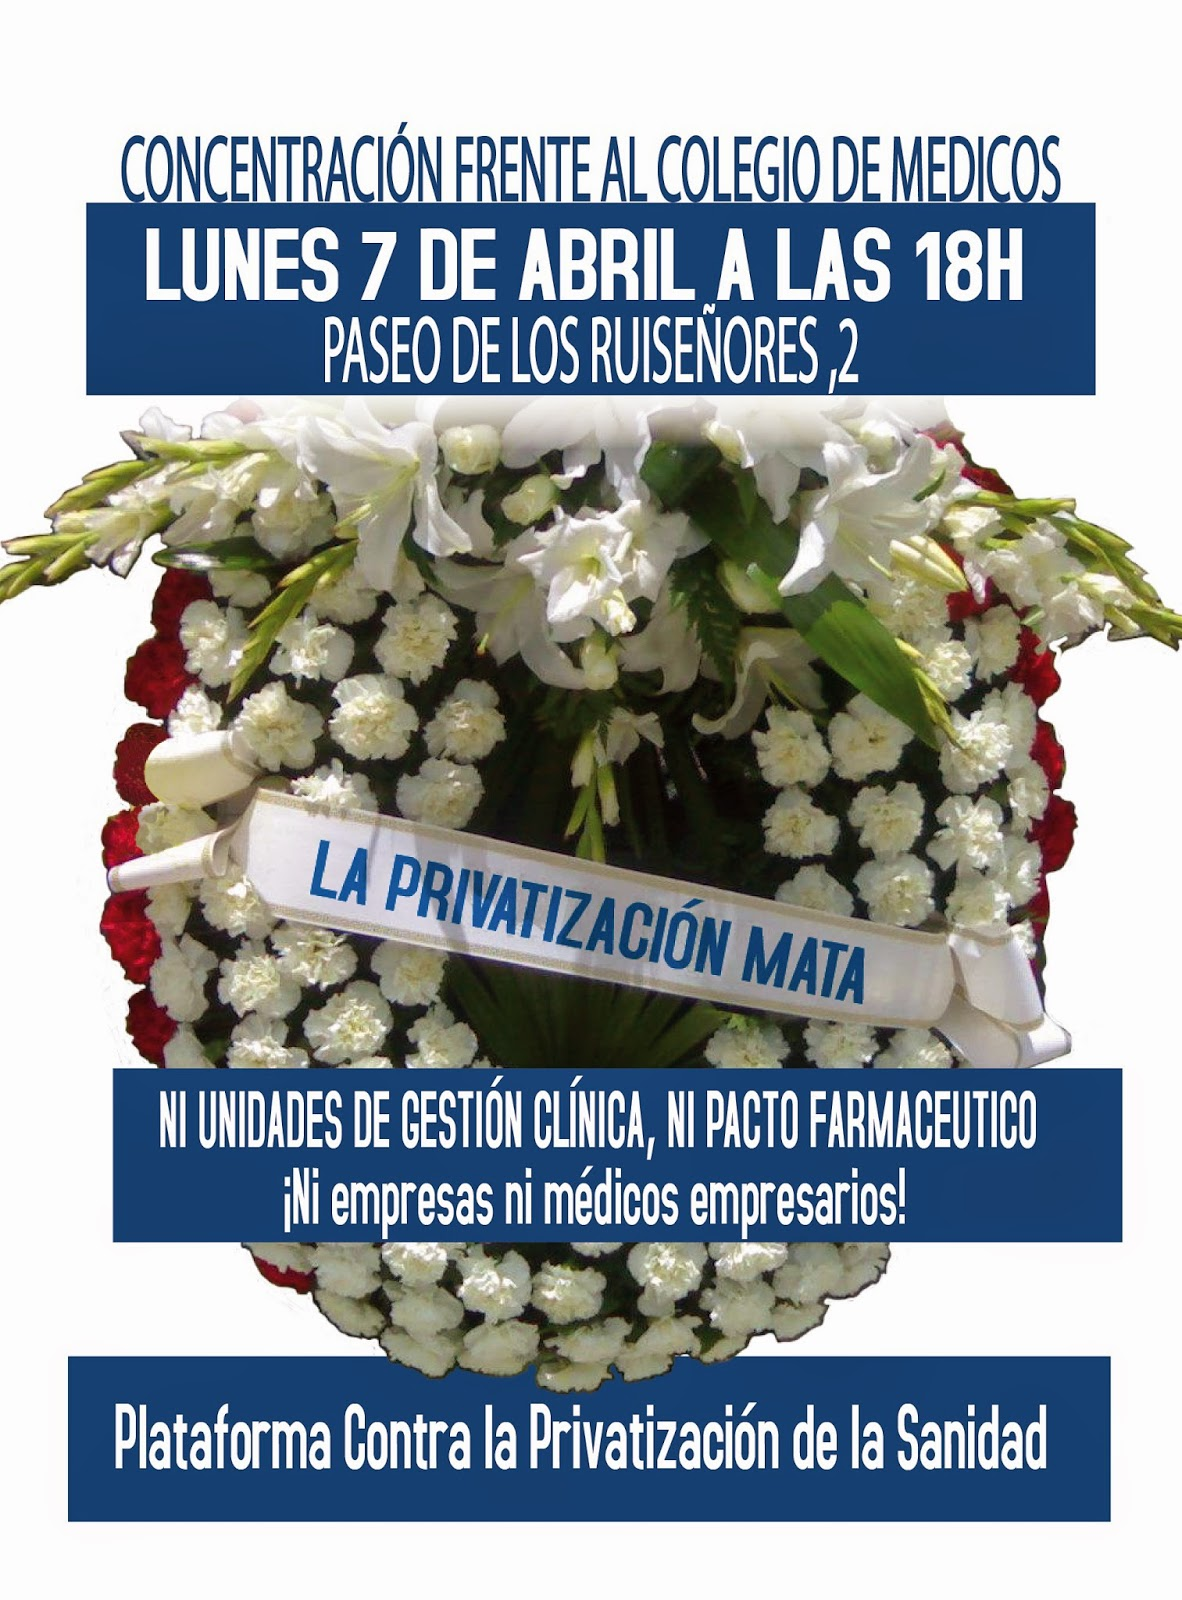 concentracion_contra_la_privatizacion_de_la_sanidad_7_Abril_2014